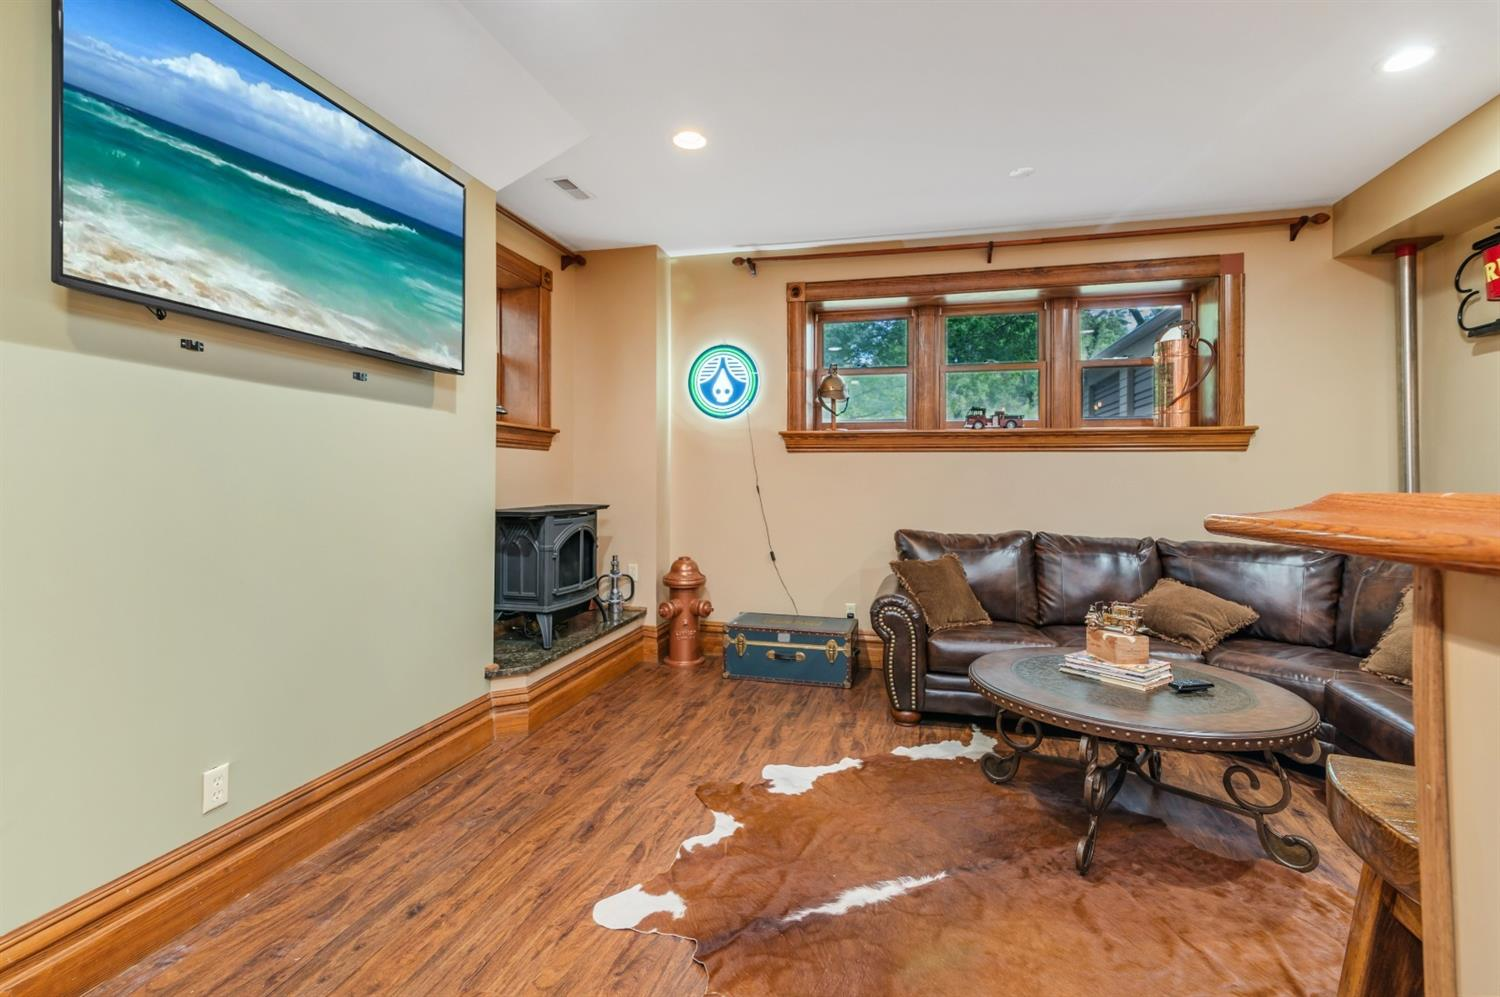 Spacious enough to make a living suite for help/multi generational living, or keep as your hide away!